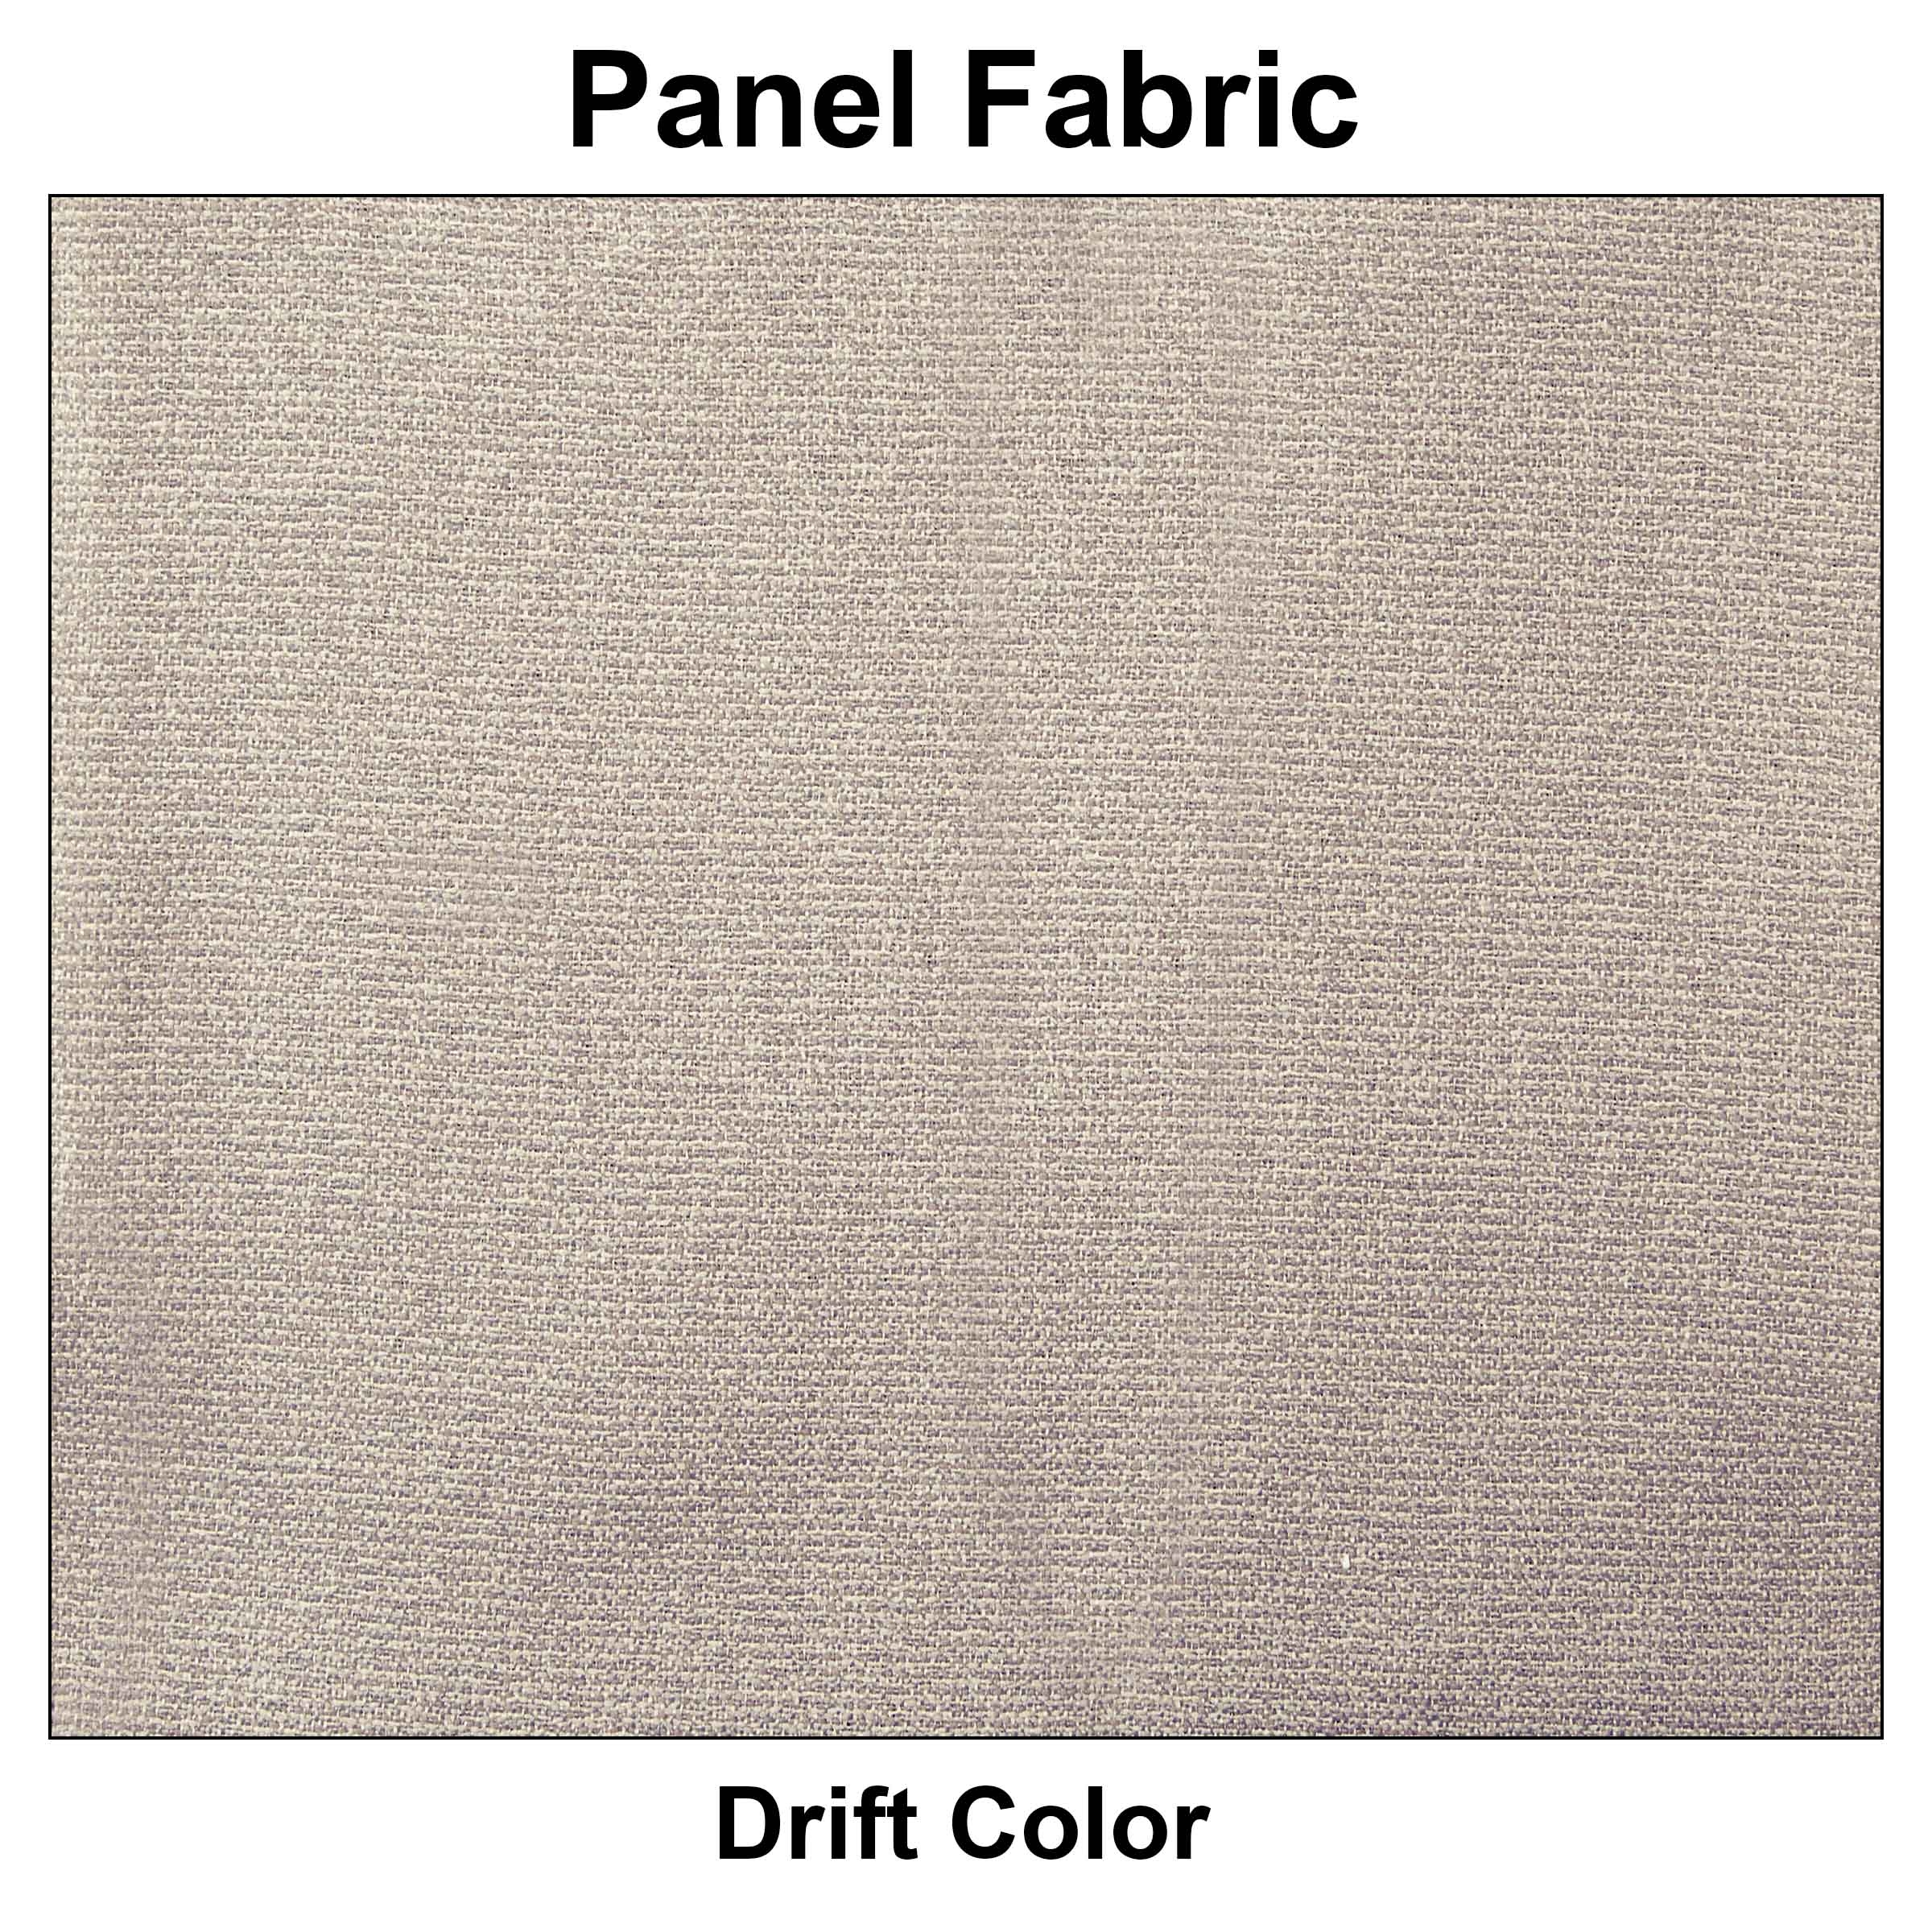 Modular office furniture systems fabric